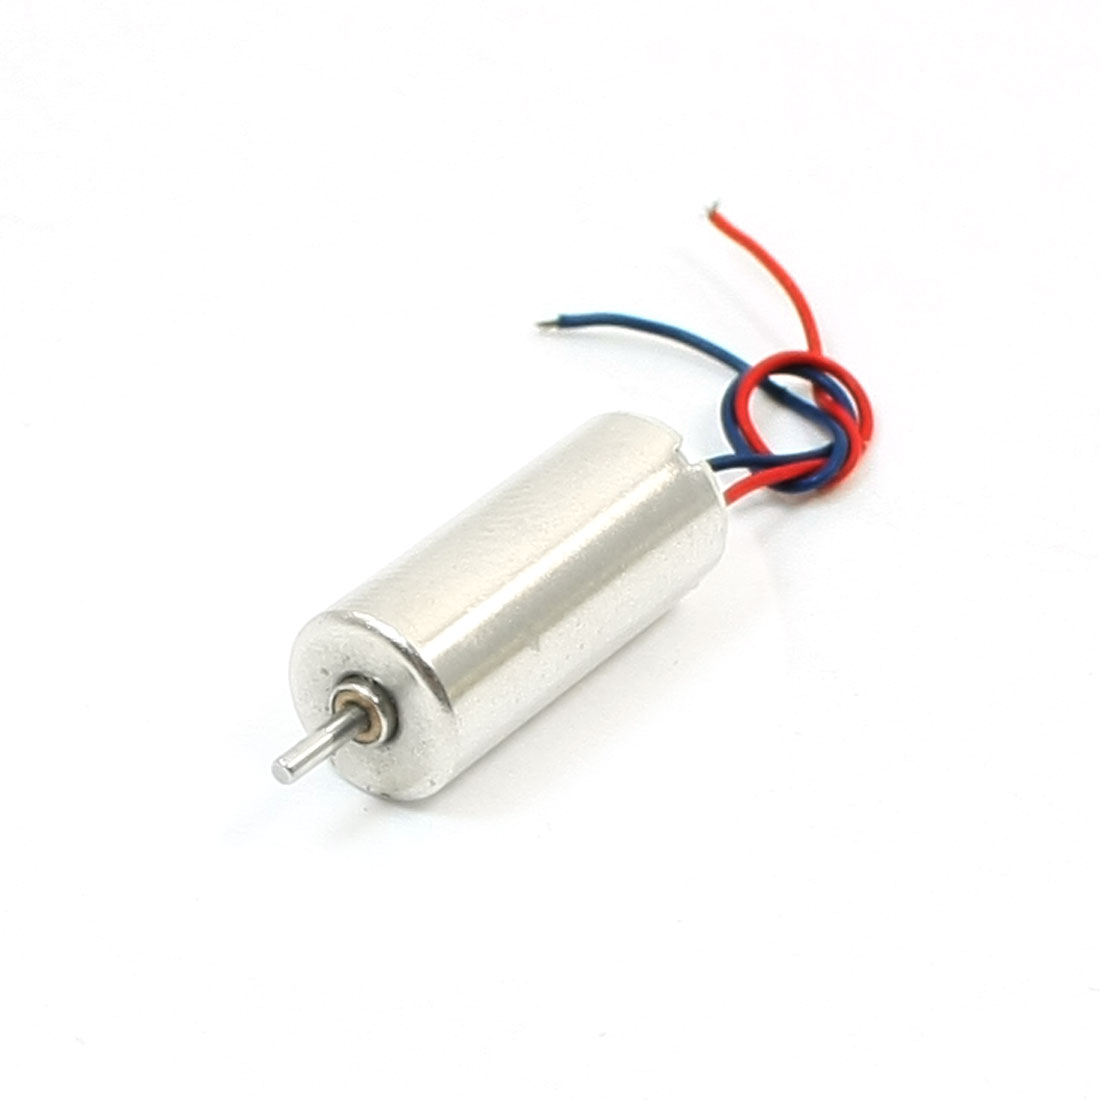 DIY-RC-Aircraft-1mm-Dia-Shaft-Mini-DC-Coreless-Motor-3V-30000RPM